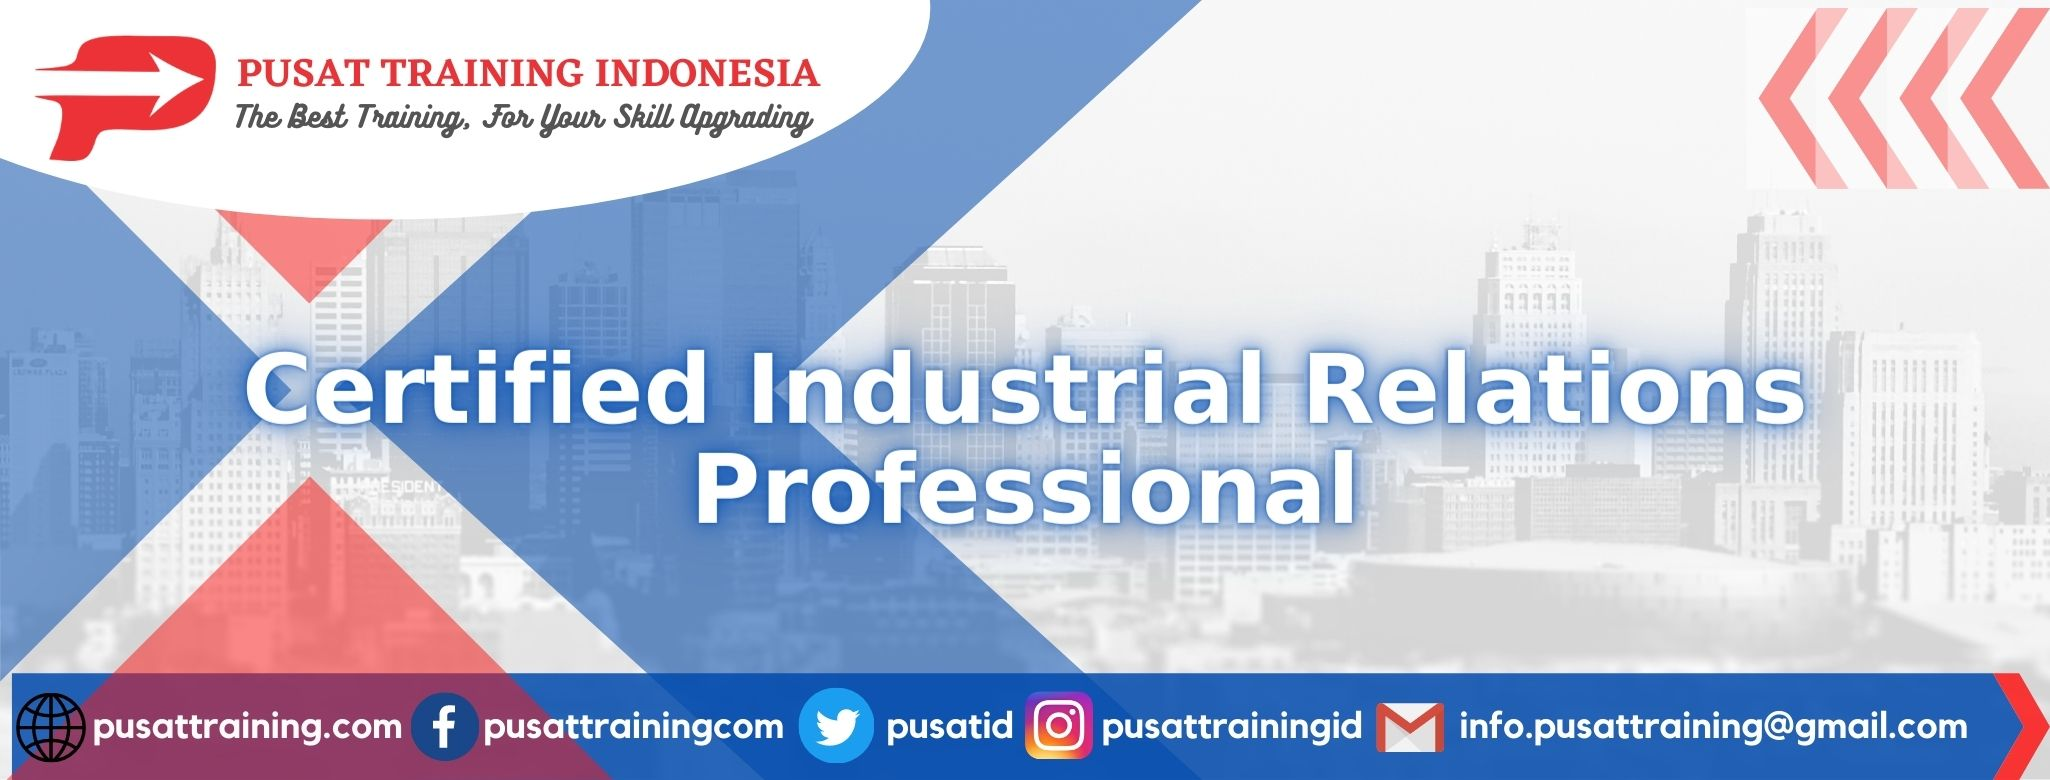 Certified-Industrial-Relations-Professional